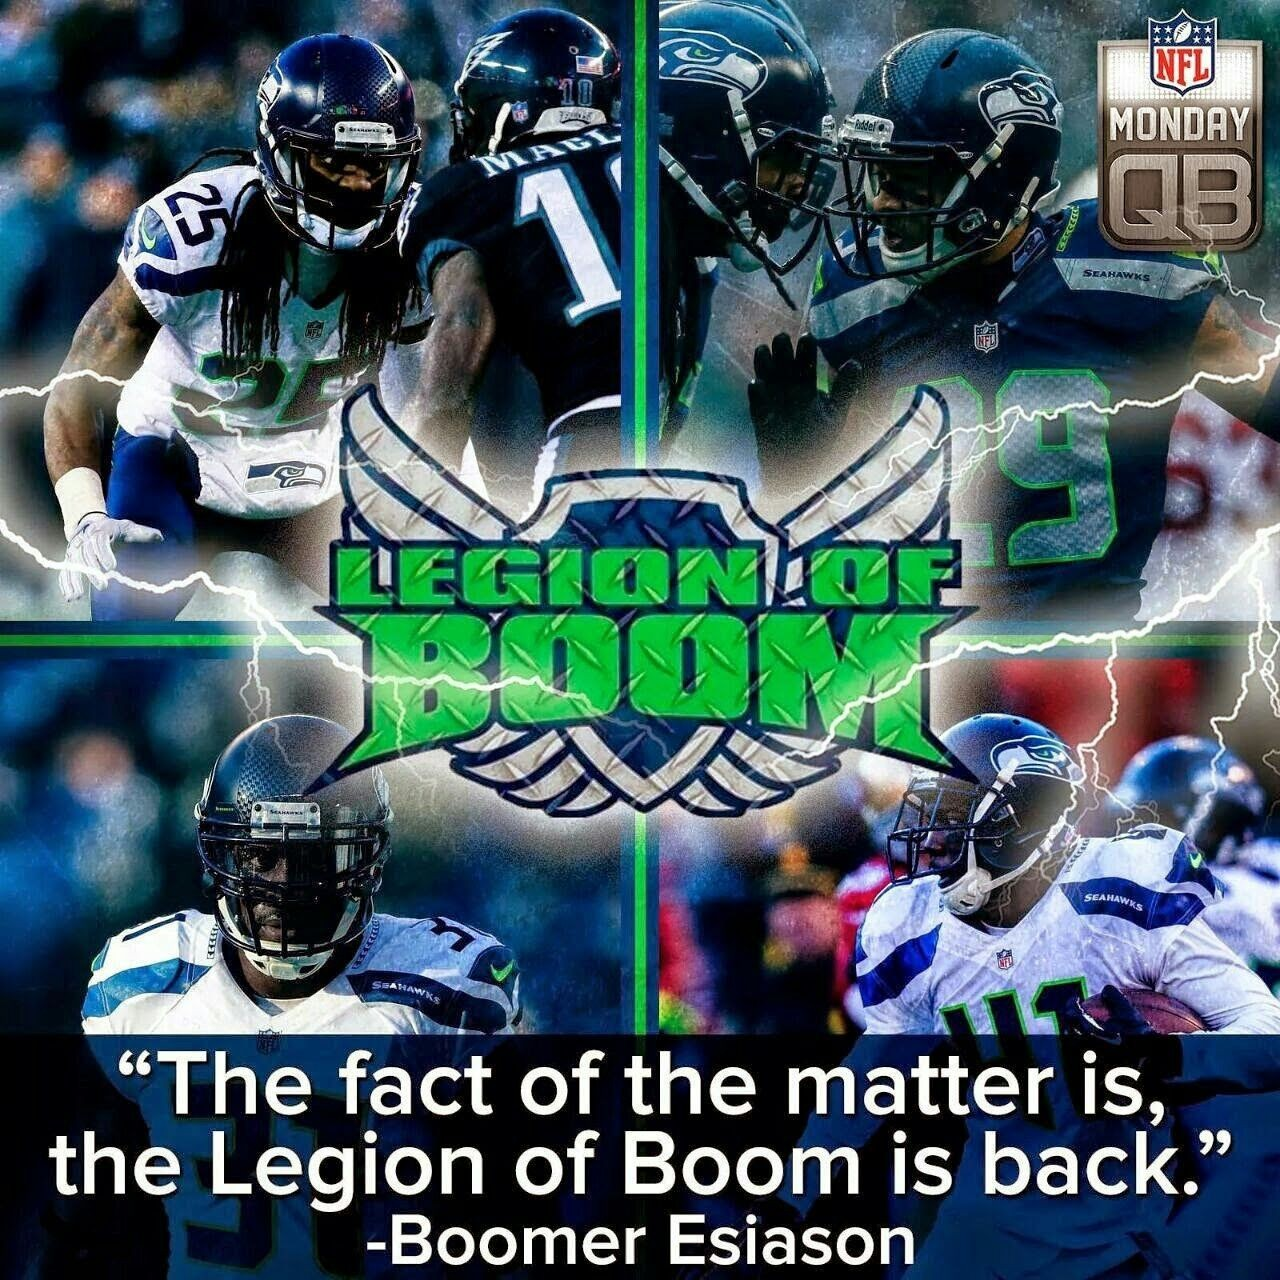 SEATTLE SEAHAWKS. . SUPERBOWWL CHAMPS AGAIN